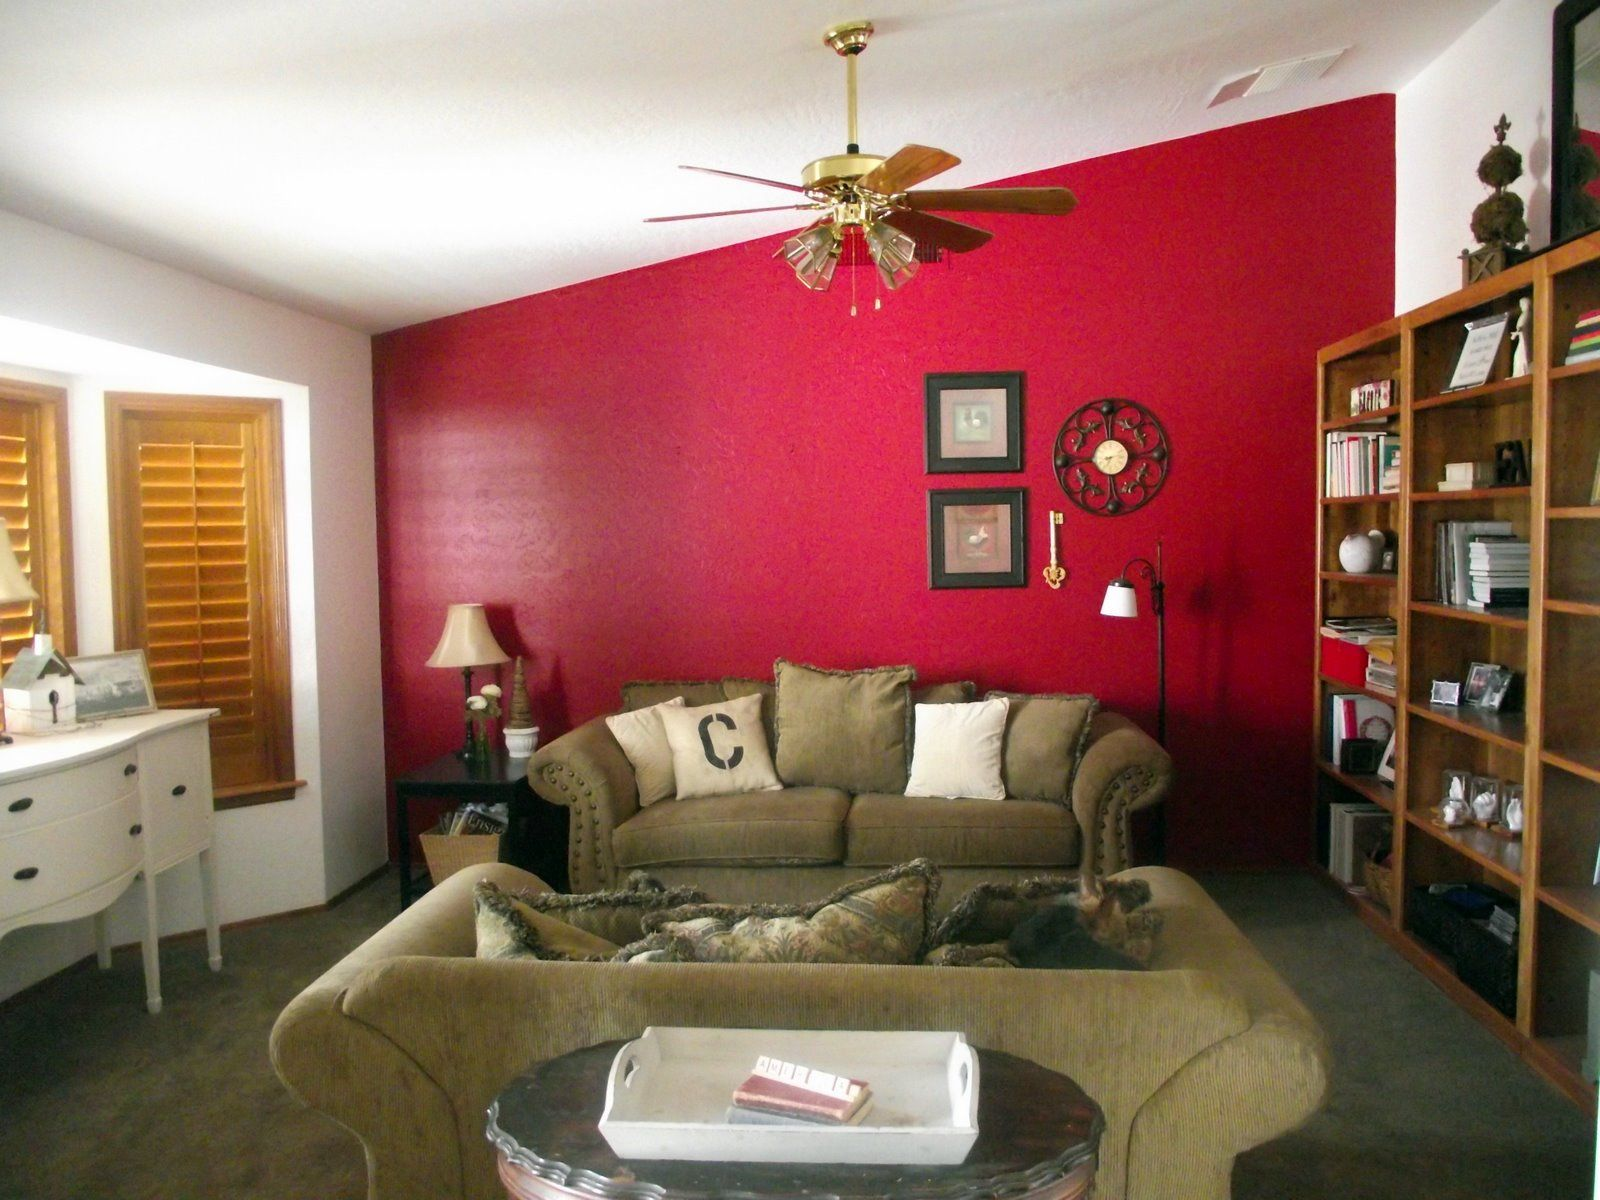 Decorating, Astounding Interior House With Red Wall: Cool Colors ...